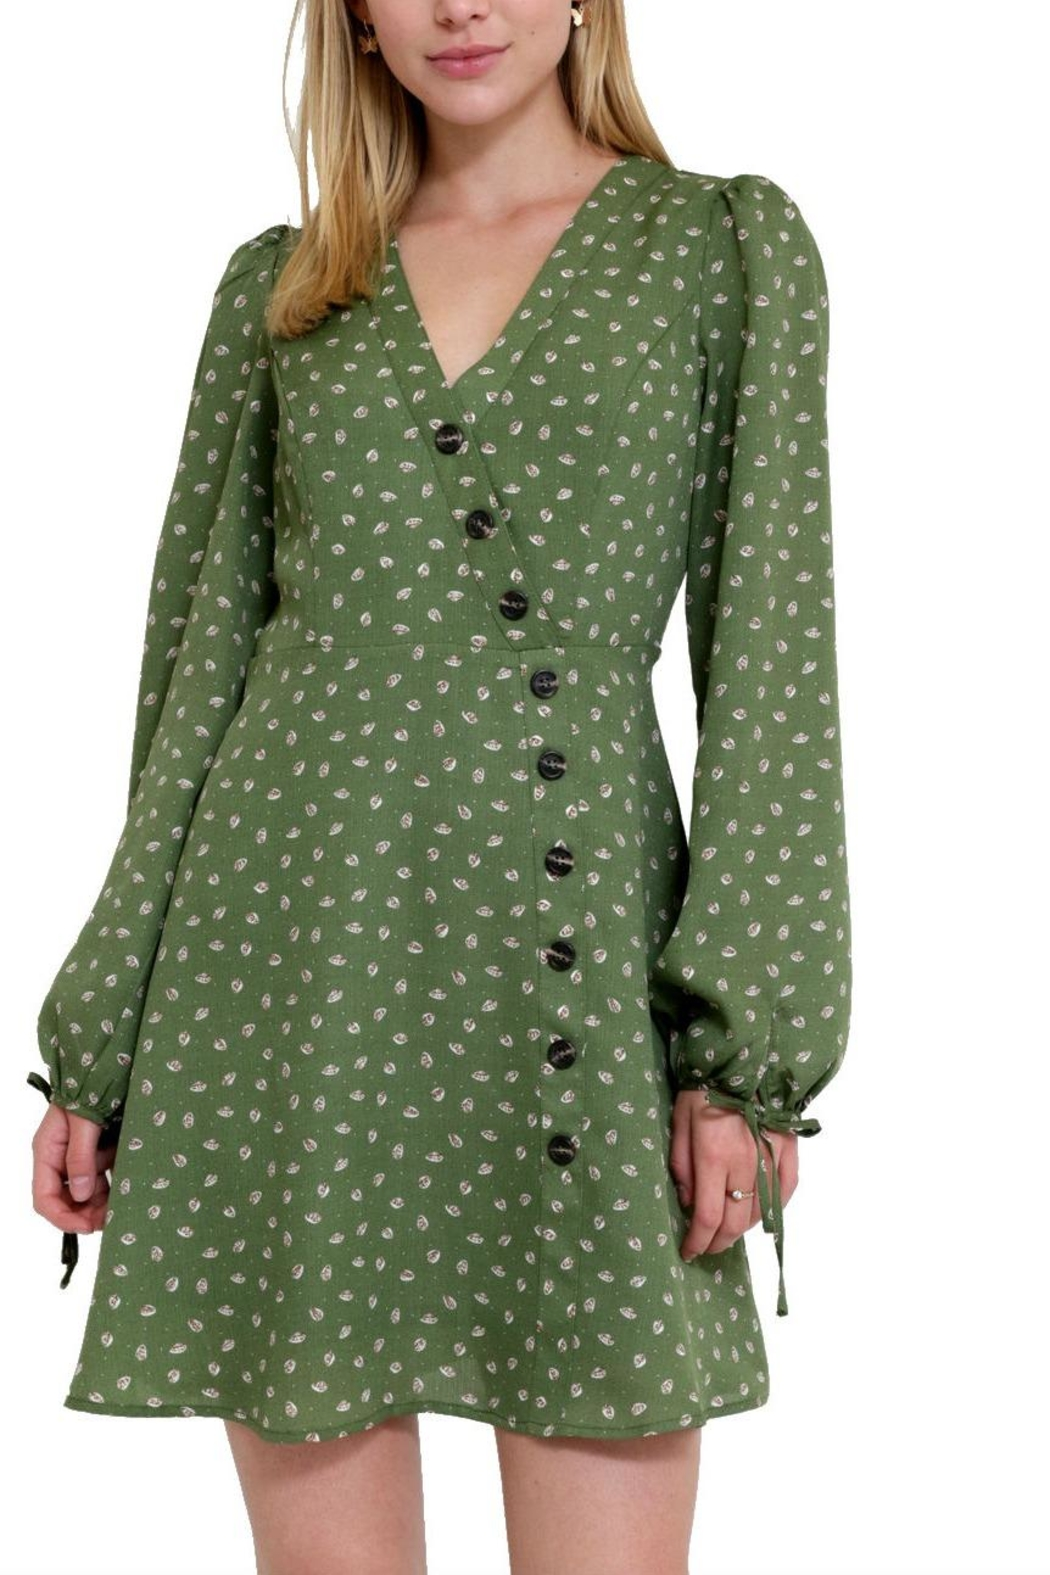 essue Print Button-Down Mini-Dress - Front Full Image